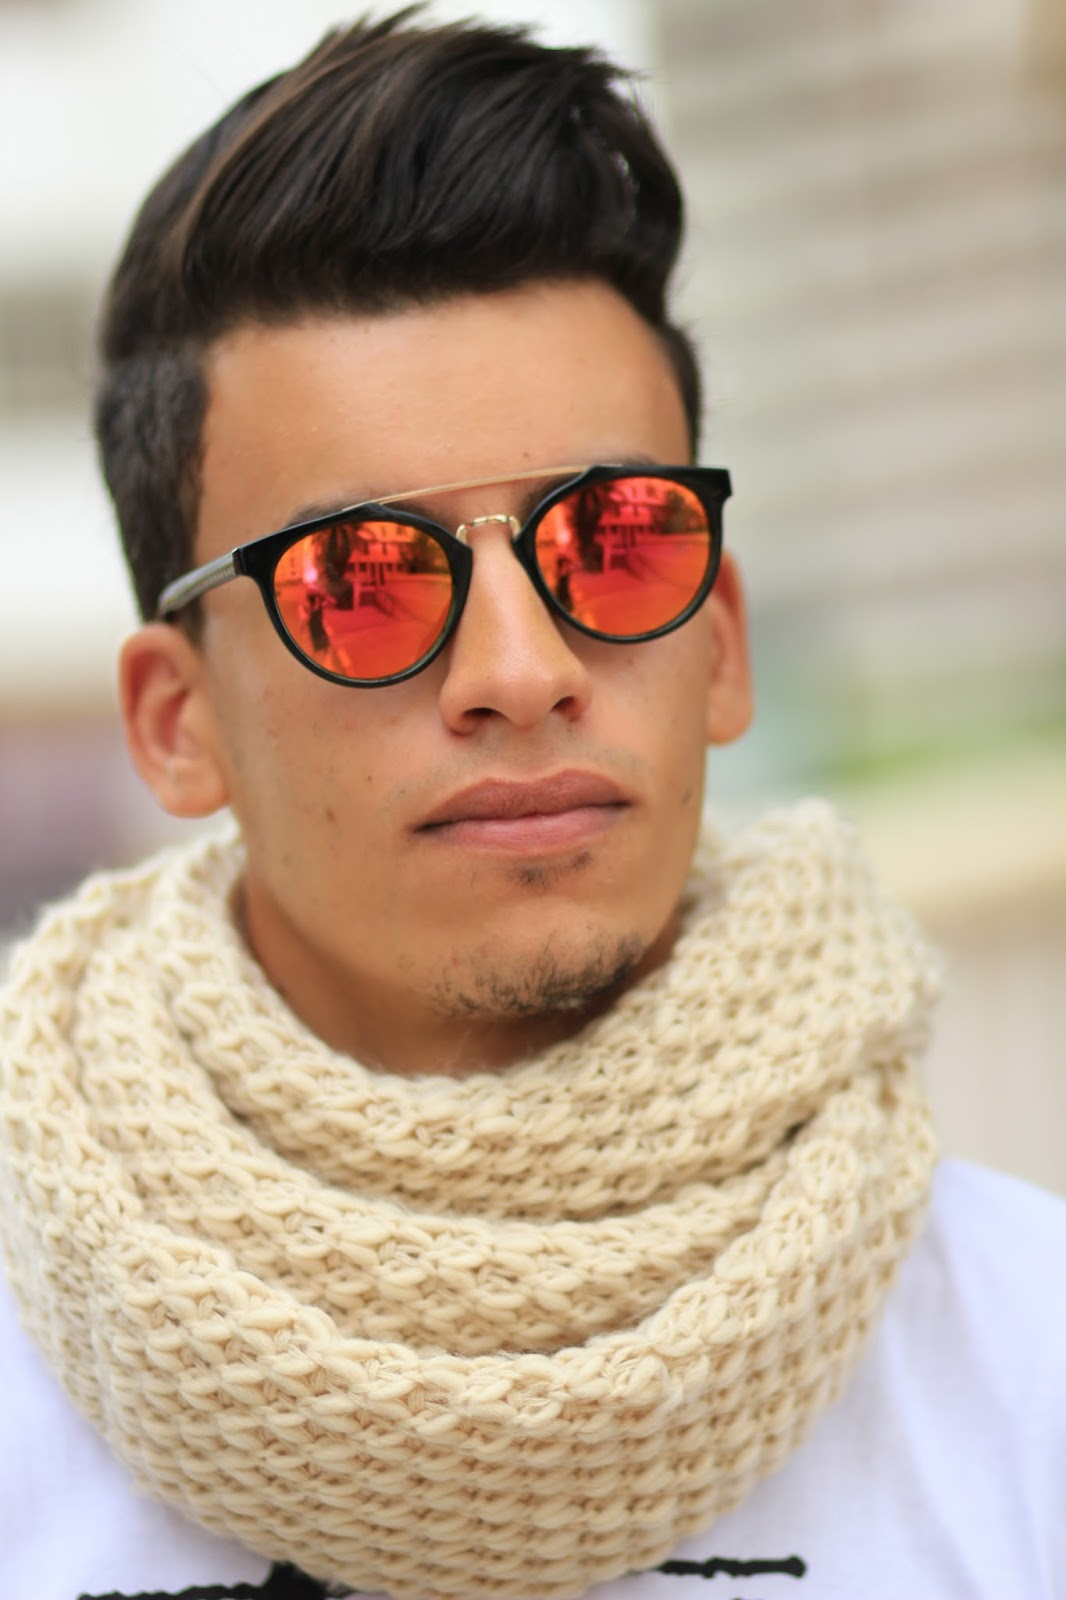 Espada Yassine wearing Emblem Eyewear Sunglasses